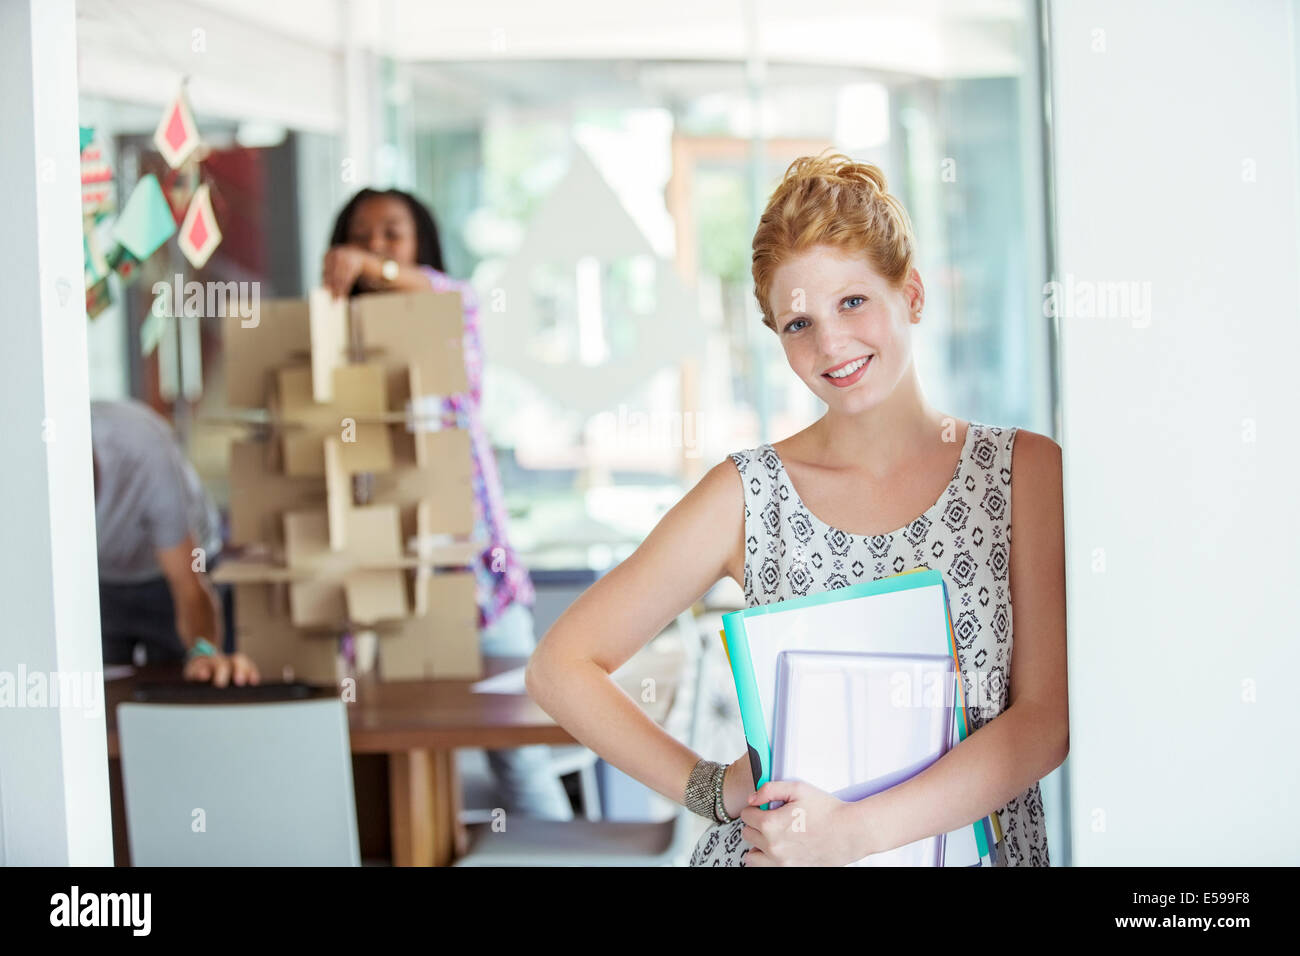 Businesswoman transportant de liants dans l'office de tourisme Photo Stock